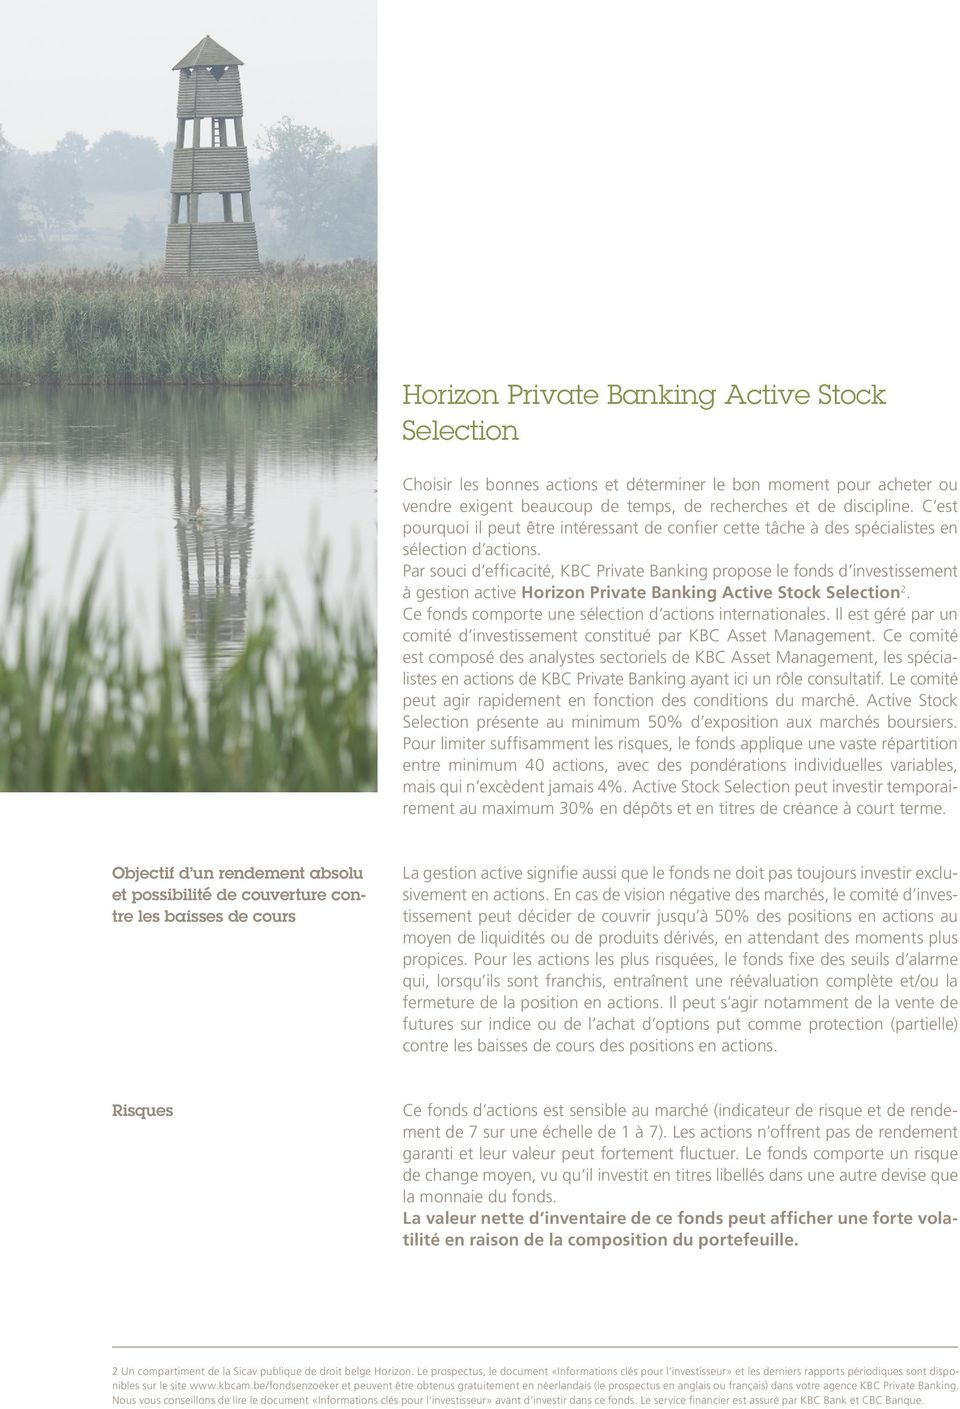 Par souci d efficacité, KBC Private Banking propose le fonds d investissement à gestion active Horizon Private Banking Active Stock Selection 2.